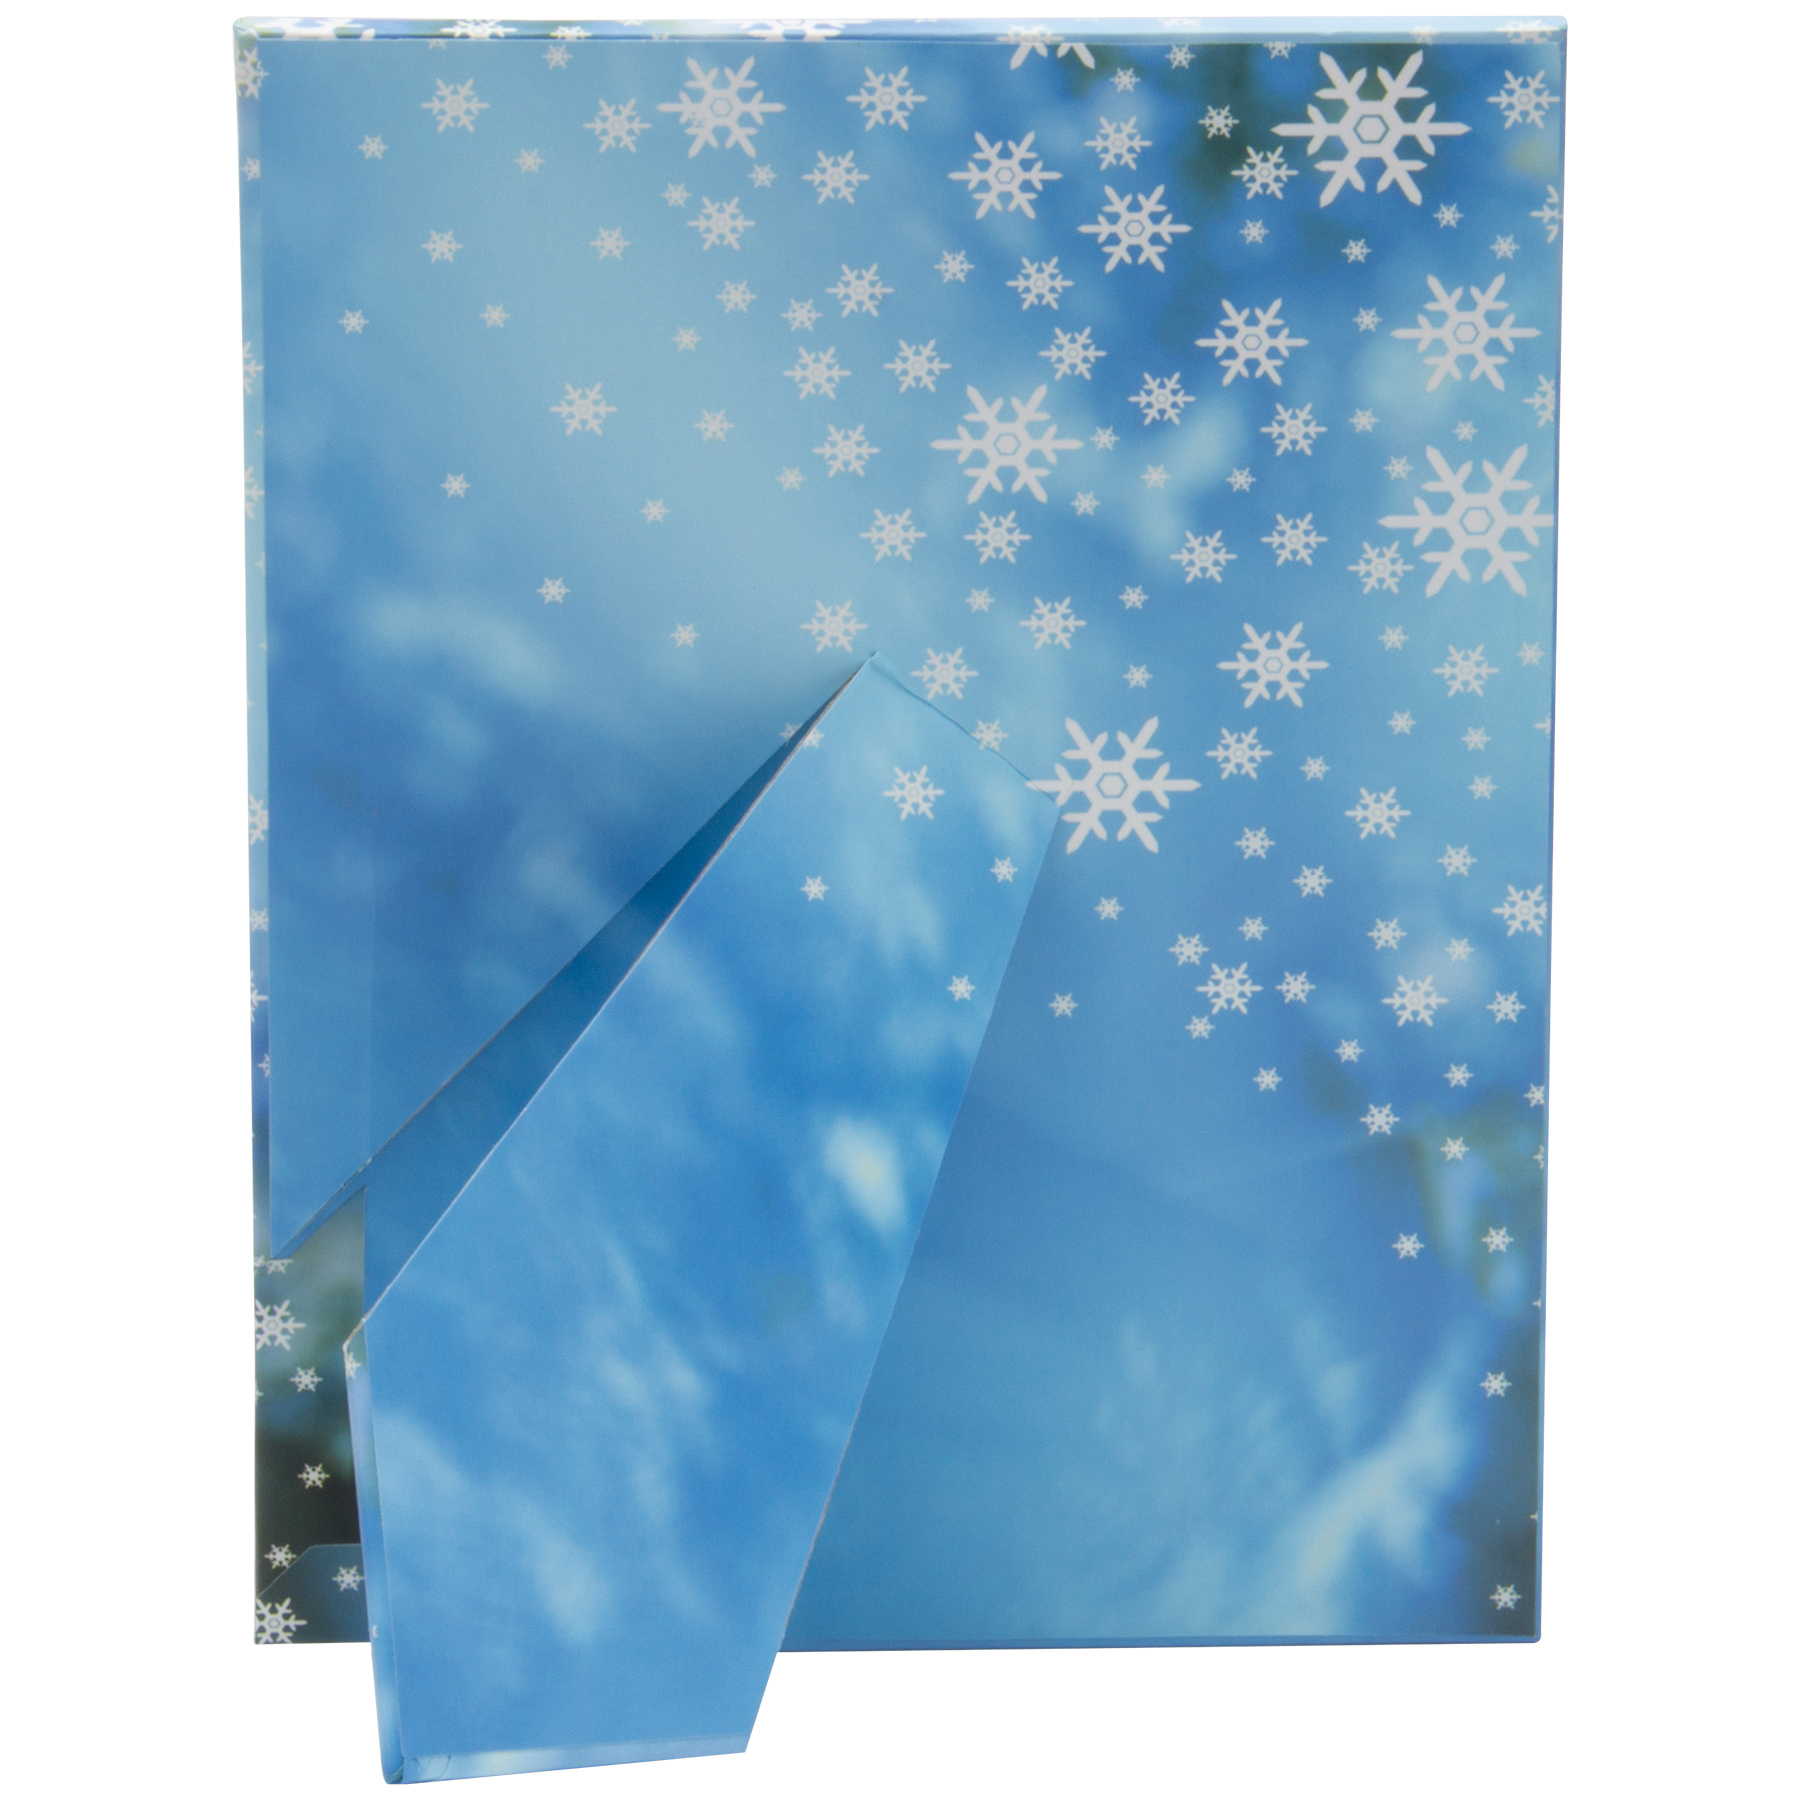 Wholesale Picture Frames - Winter Snowflake Picture Frames | Neil ...